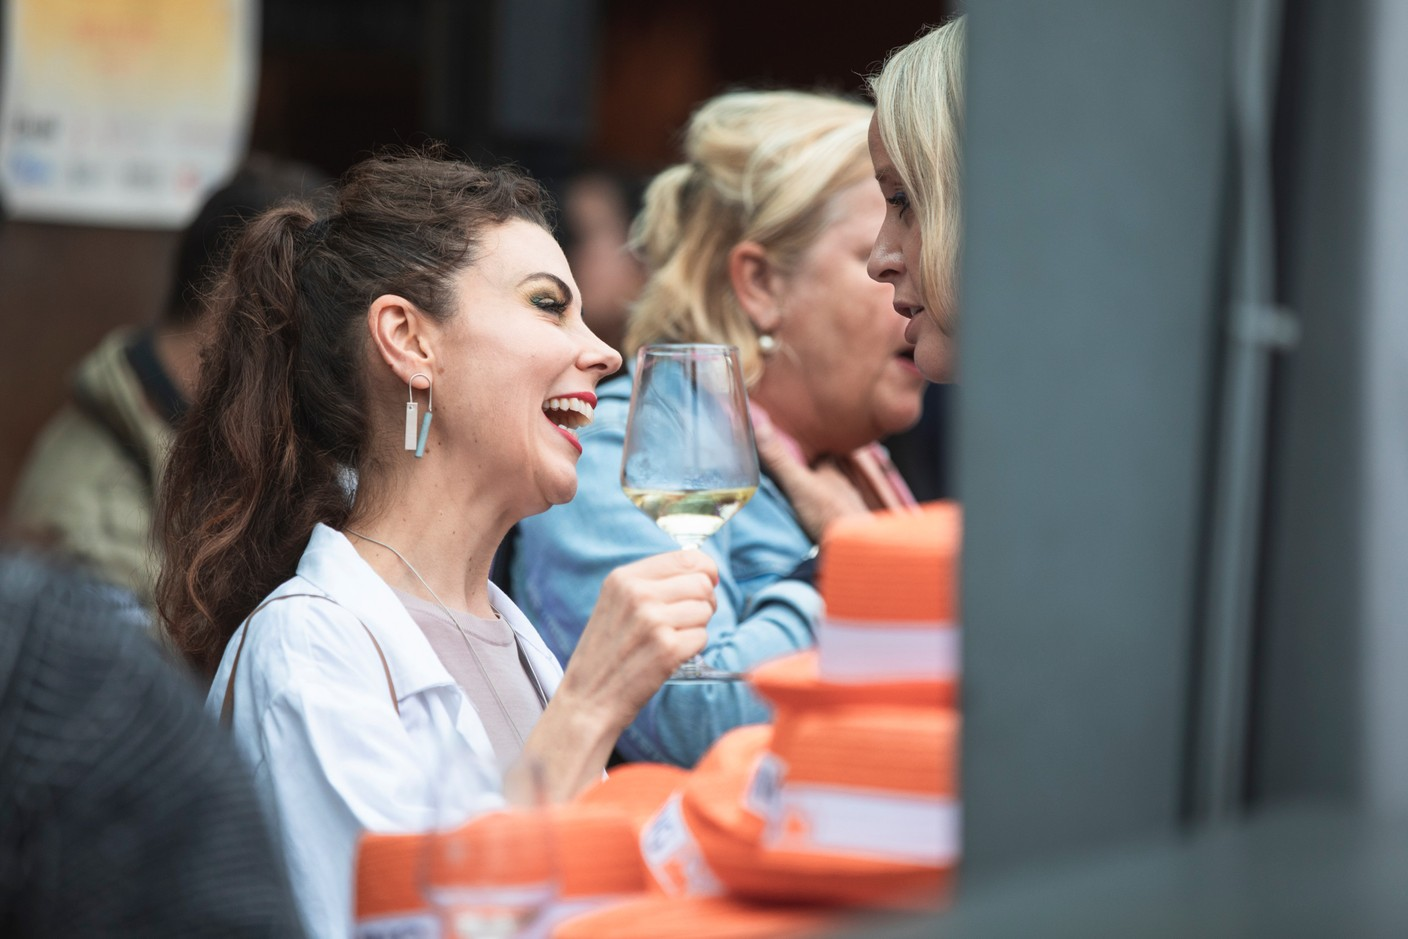 Lisa Burke with RTL is seen at Delano's 10th anniversary party, 13 July 2021. Simon Verjus/Maison Moderne